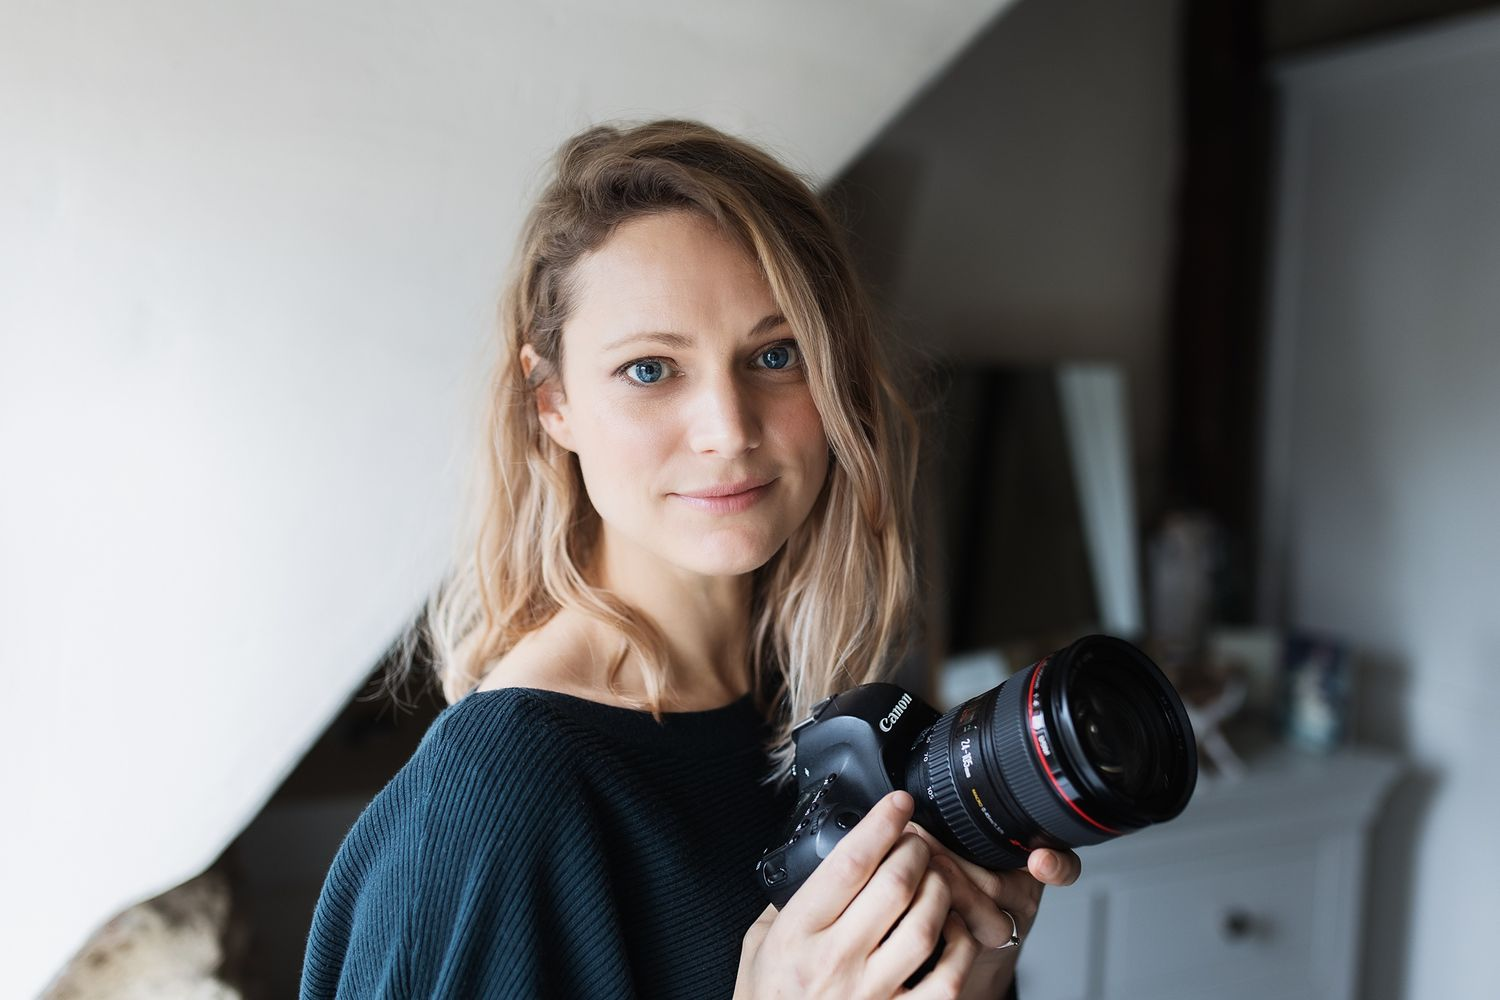 Portrait of Hannah Veale, family lifestyle and branding photographer in Oxford, Oxfordshire, UK.